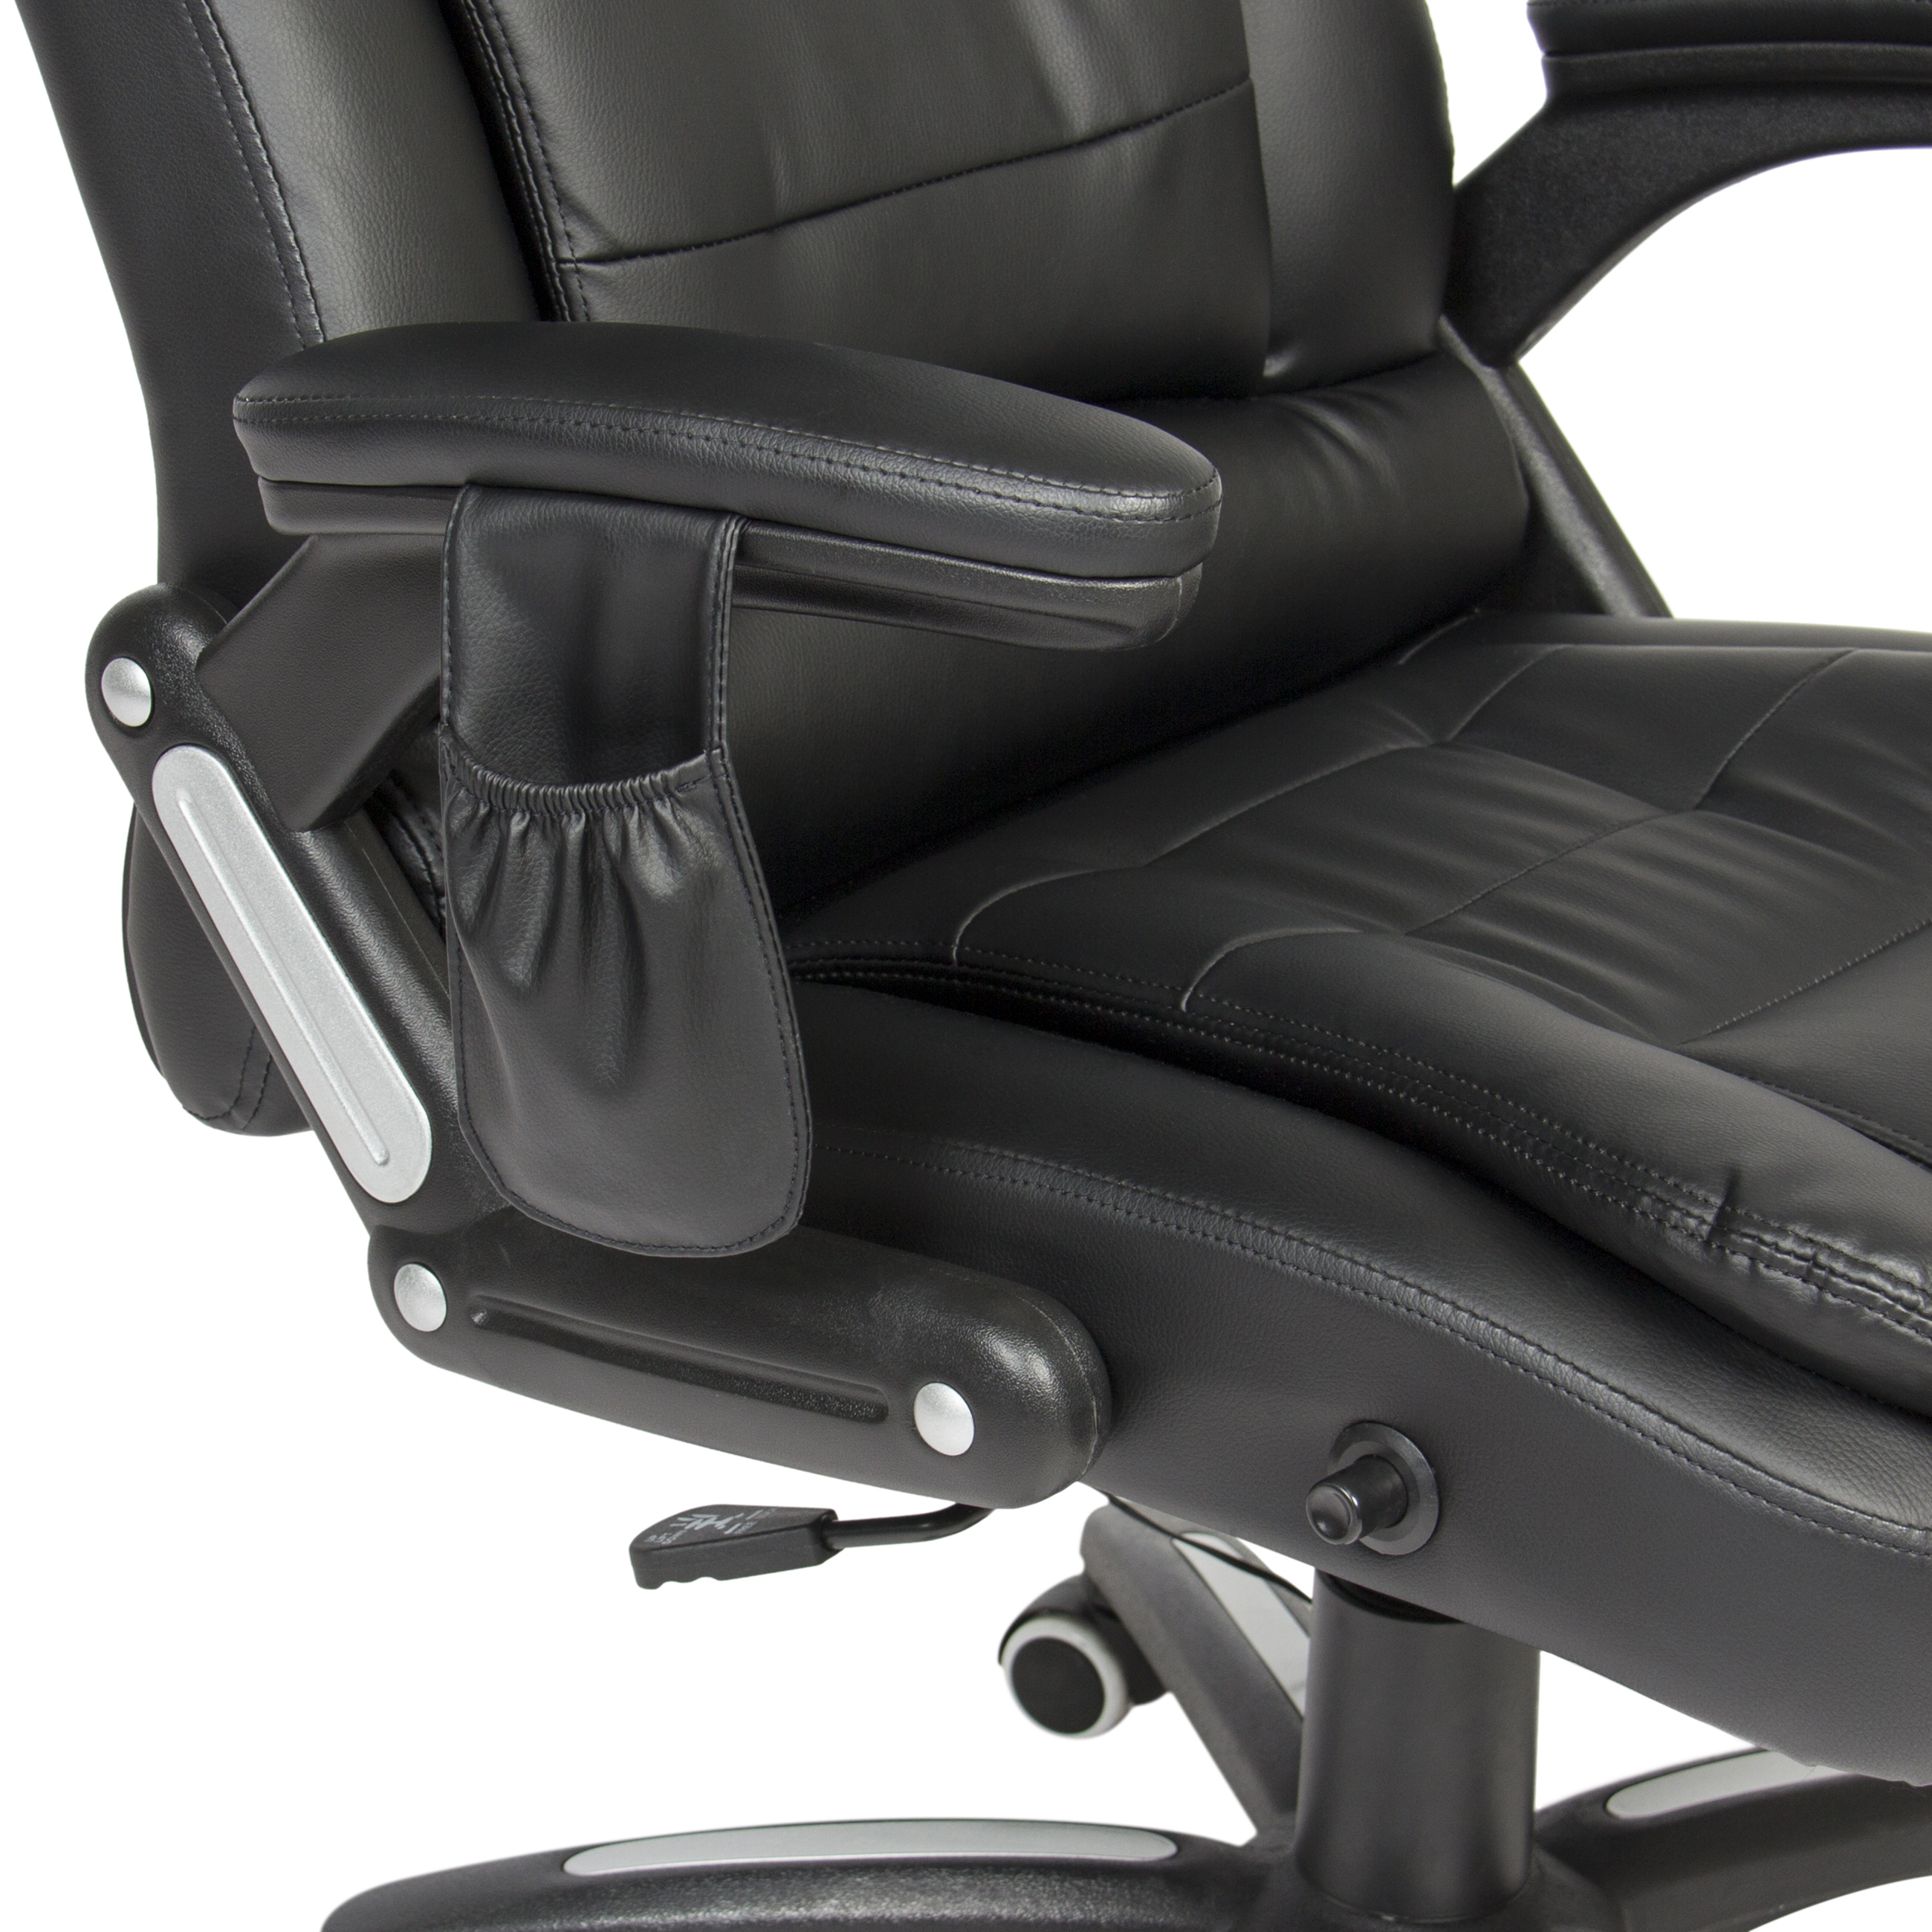 Top Rated Massage Chairs Bcp Executive Ergonomic Heated Vibrating Computer Office